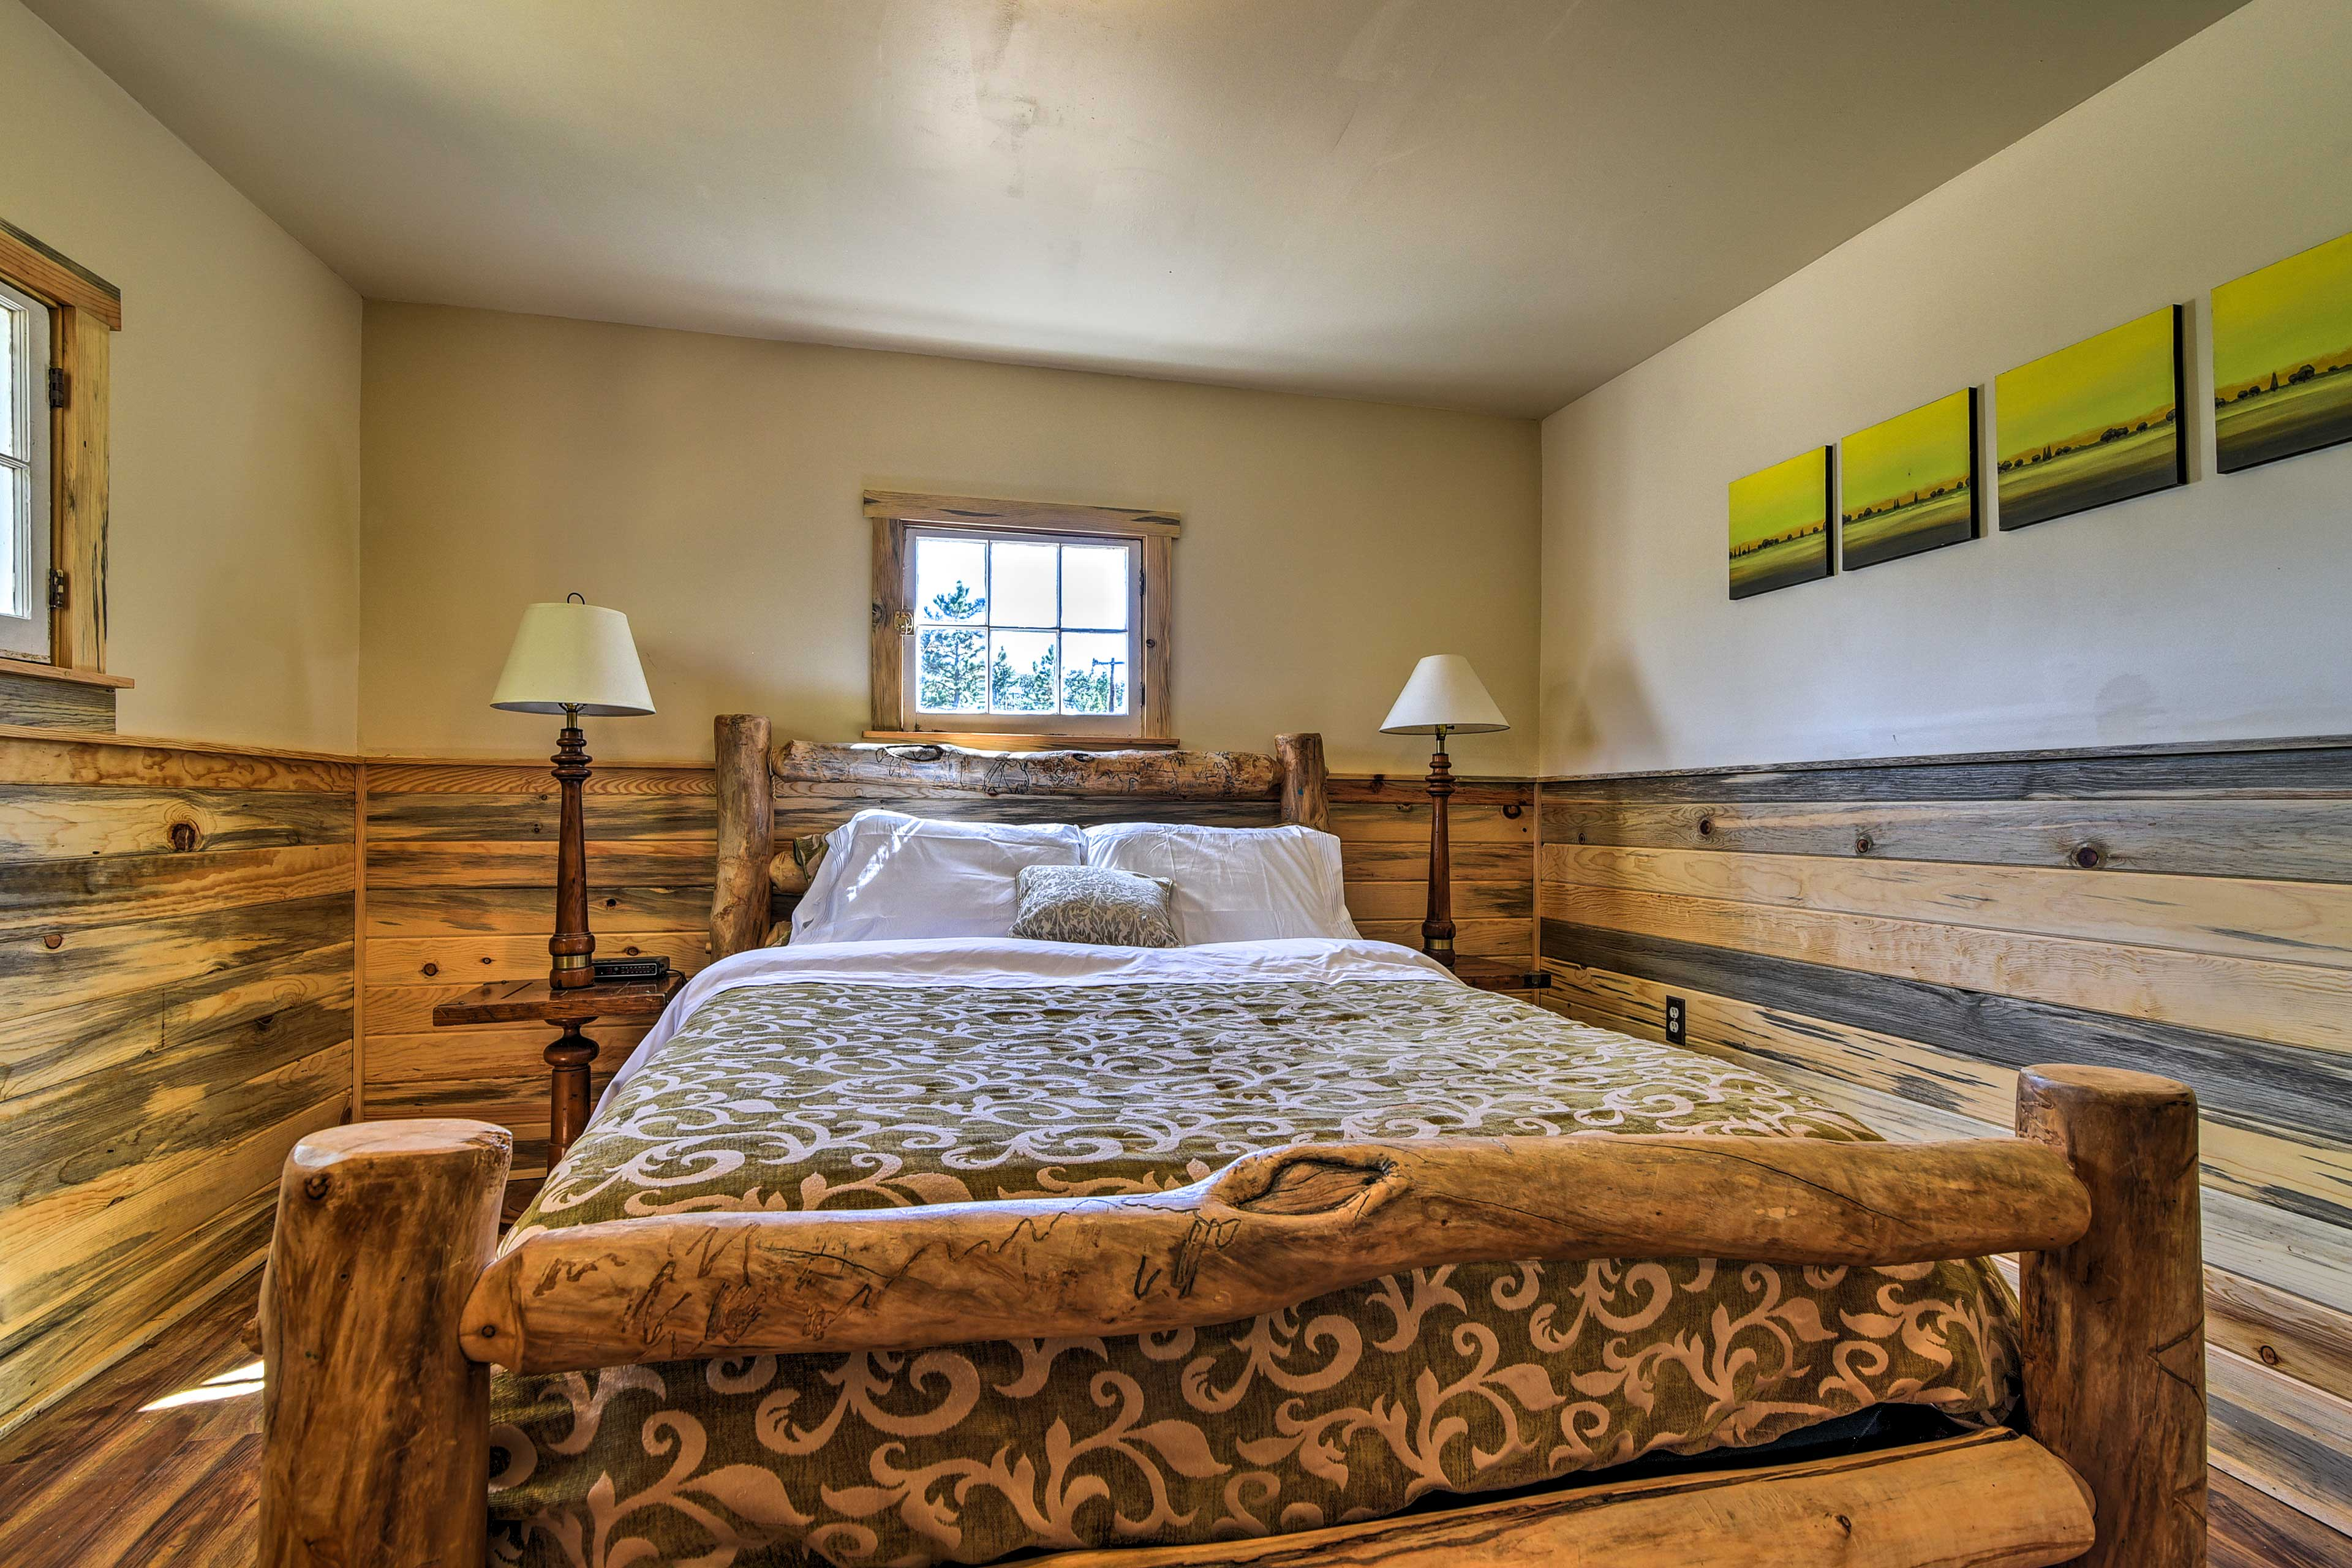 The bedroom includes a queen-sized bed.